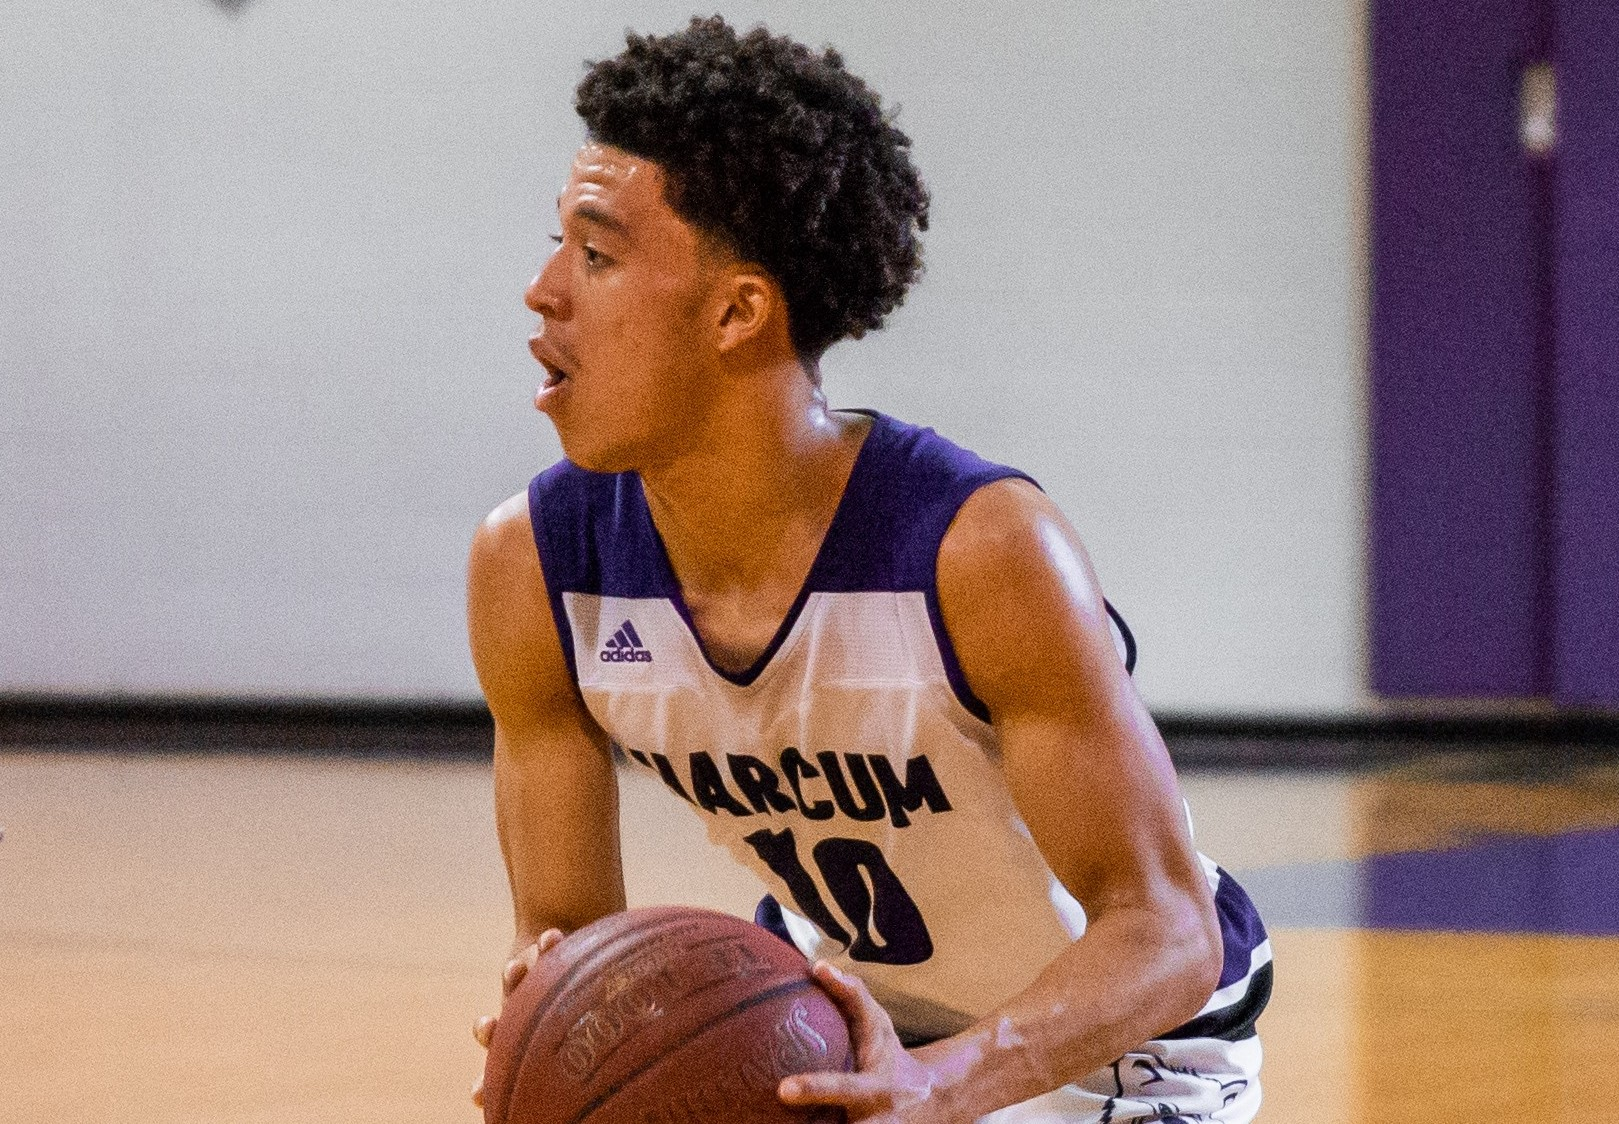 Harcum College Sophomore Earns Division I Basketball Scholarship